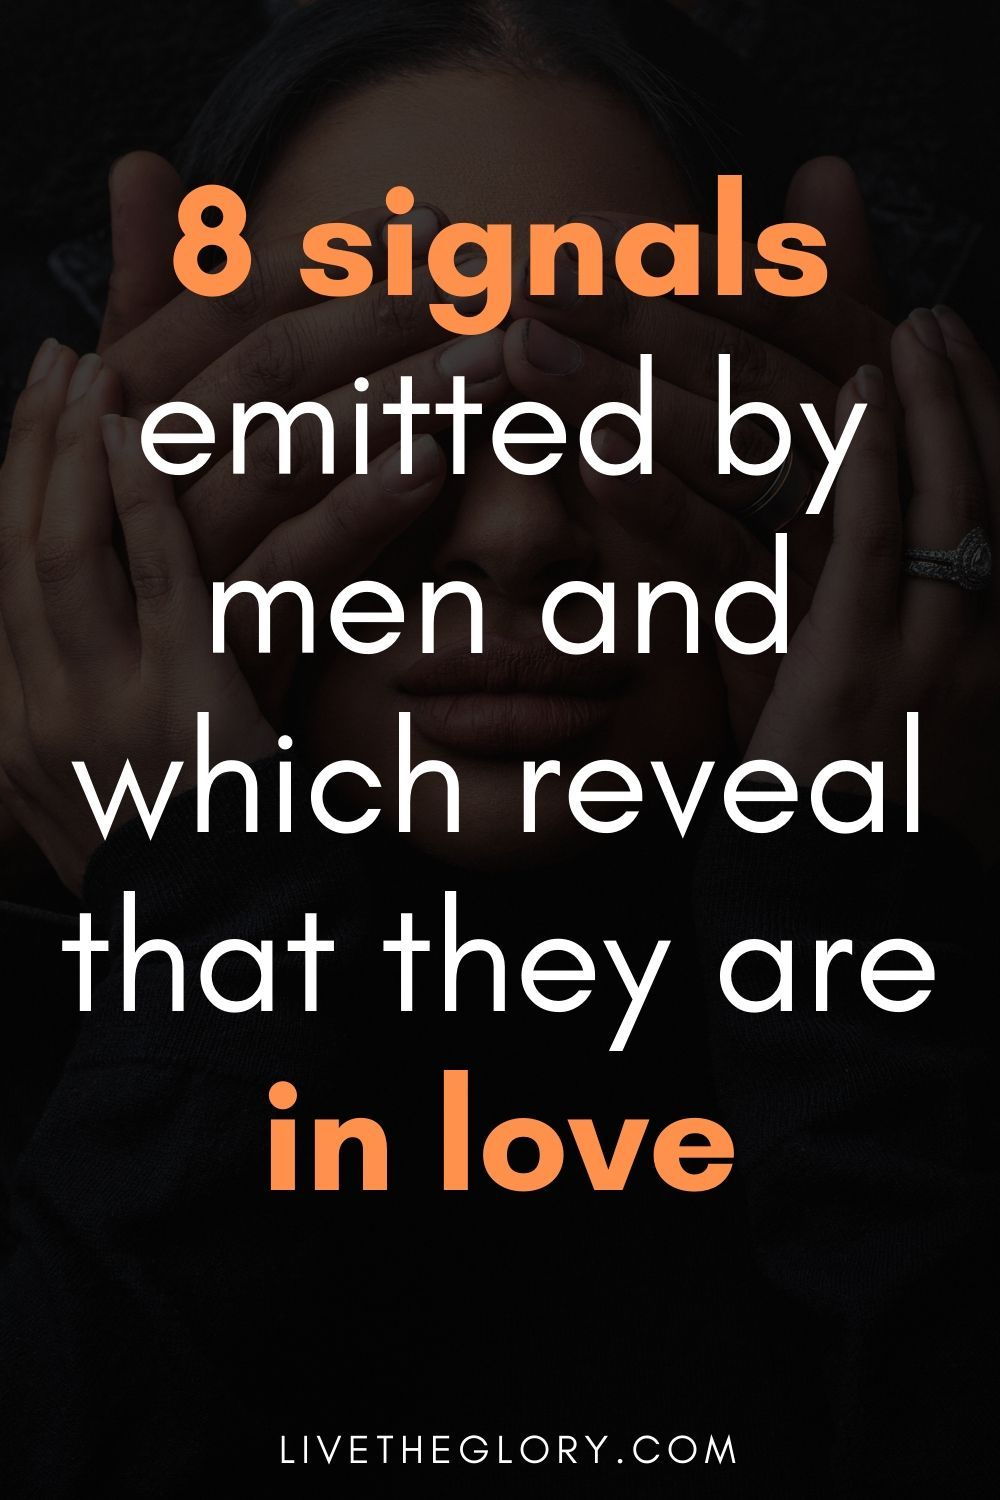 Here are 8 signals emitted by men and which reveal